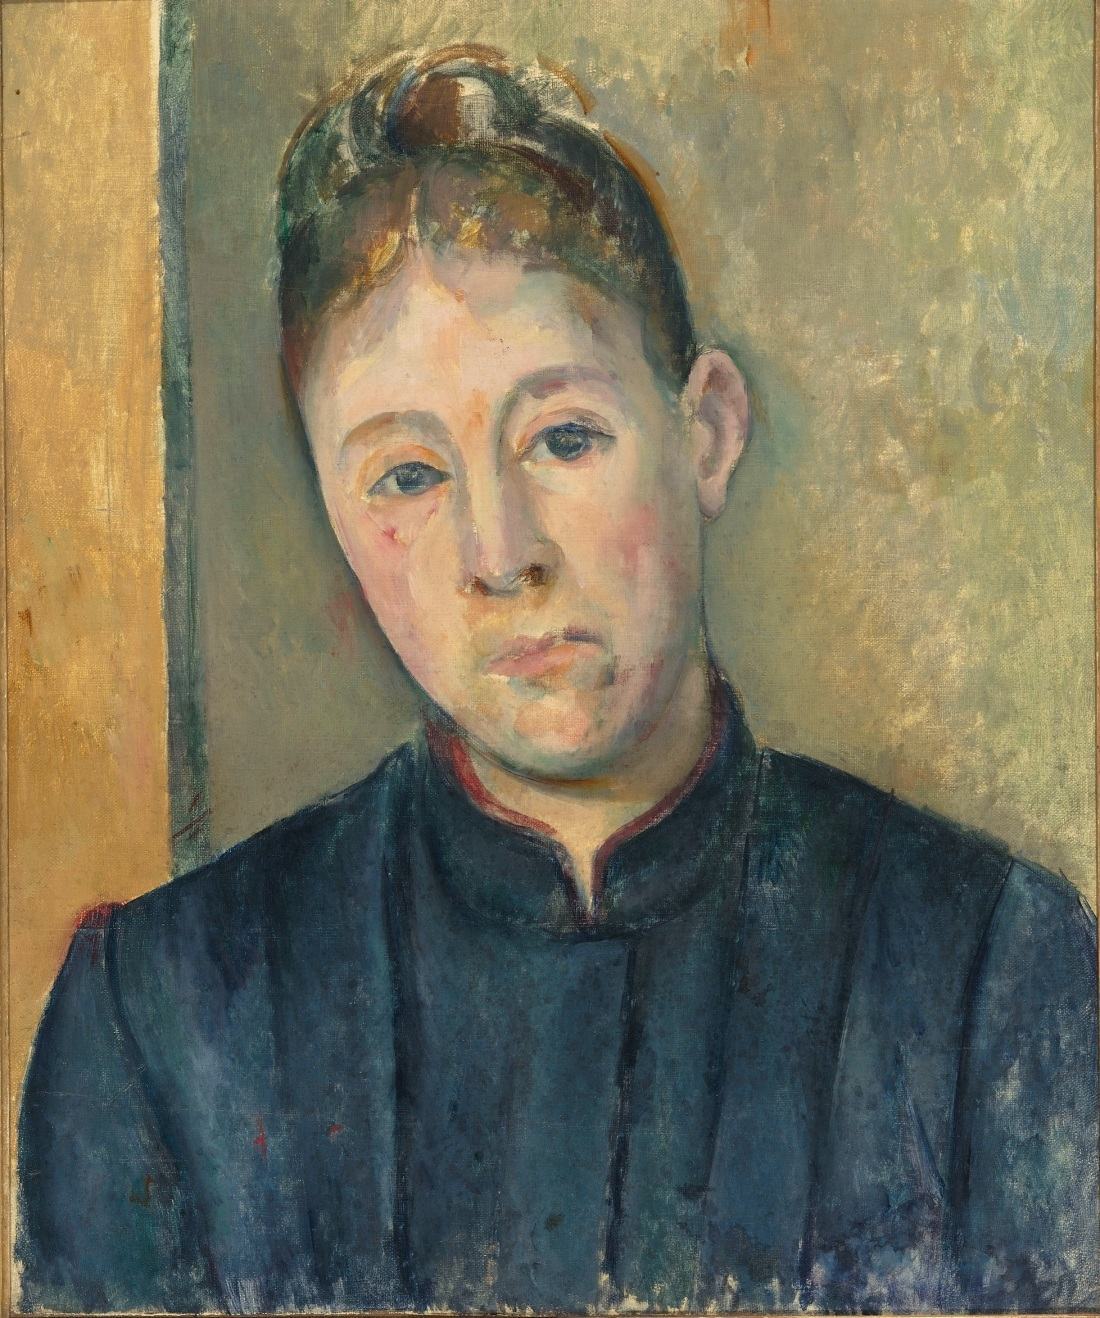 Paul Cezanne, Portrait of Madame Cezanne, ca. 1885-87. Musée d'Orsay, Paris, Gift of Philippe Meyer, 2000, on deposit at Musée Granet, Aix-en-Provence, currently on view at Musée d'Orsay.